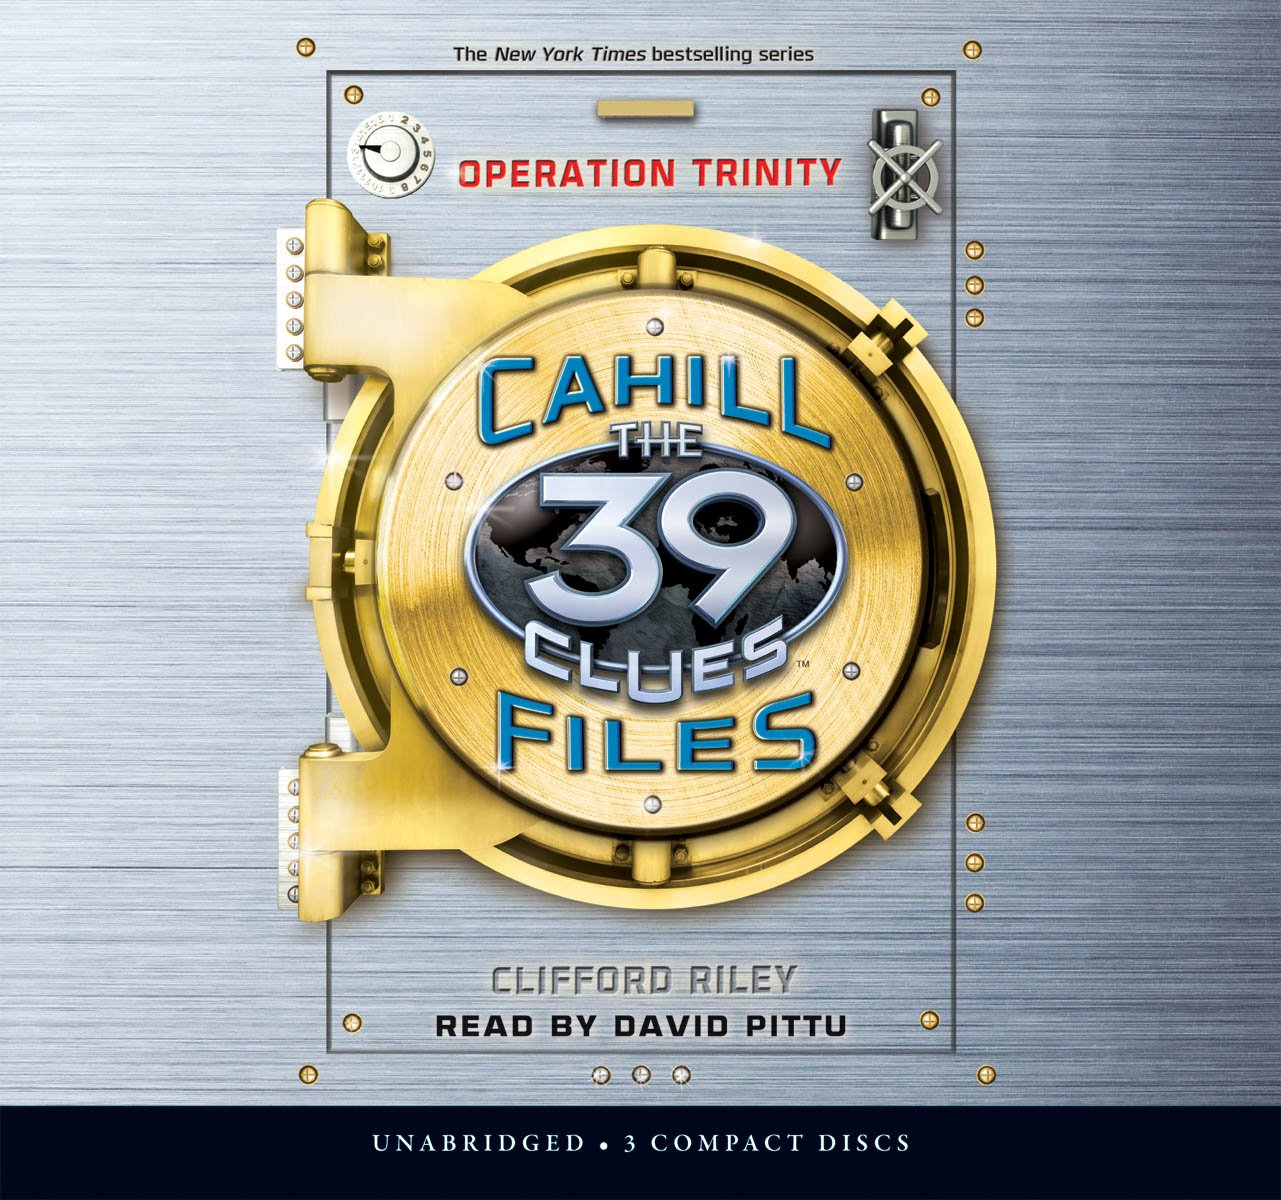 Operation Trinity (The Cahill Files, Book 1) - Audio Library Edition